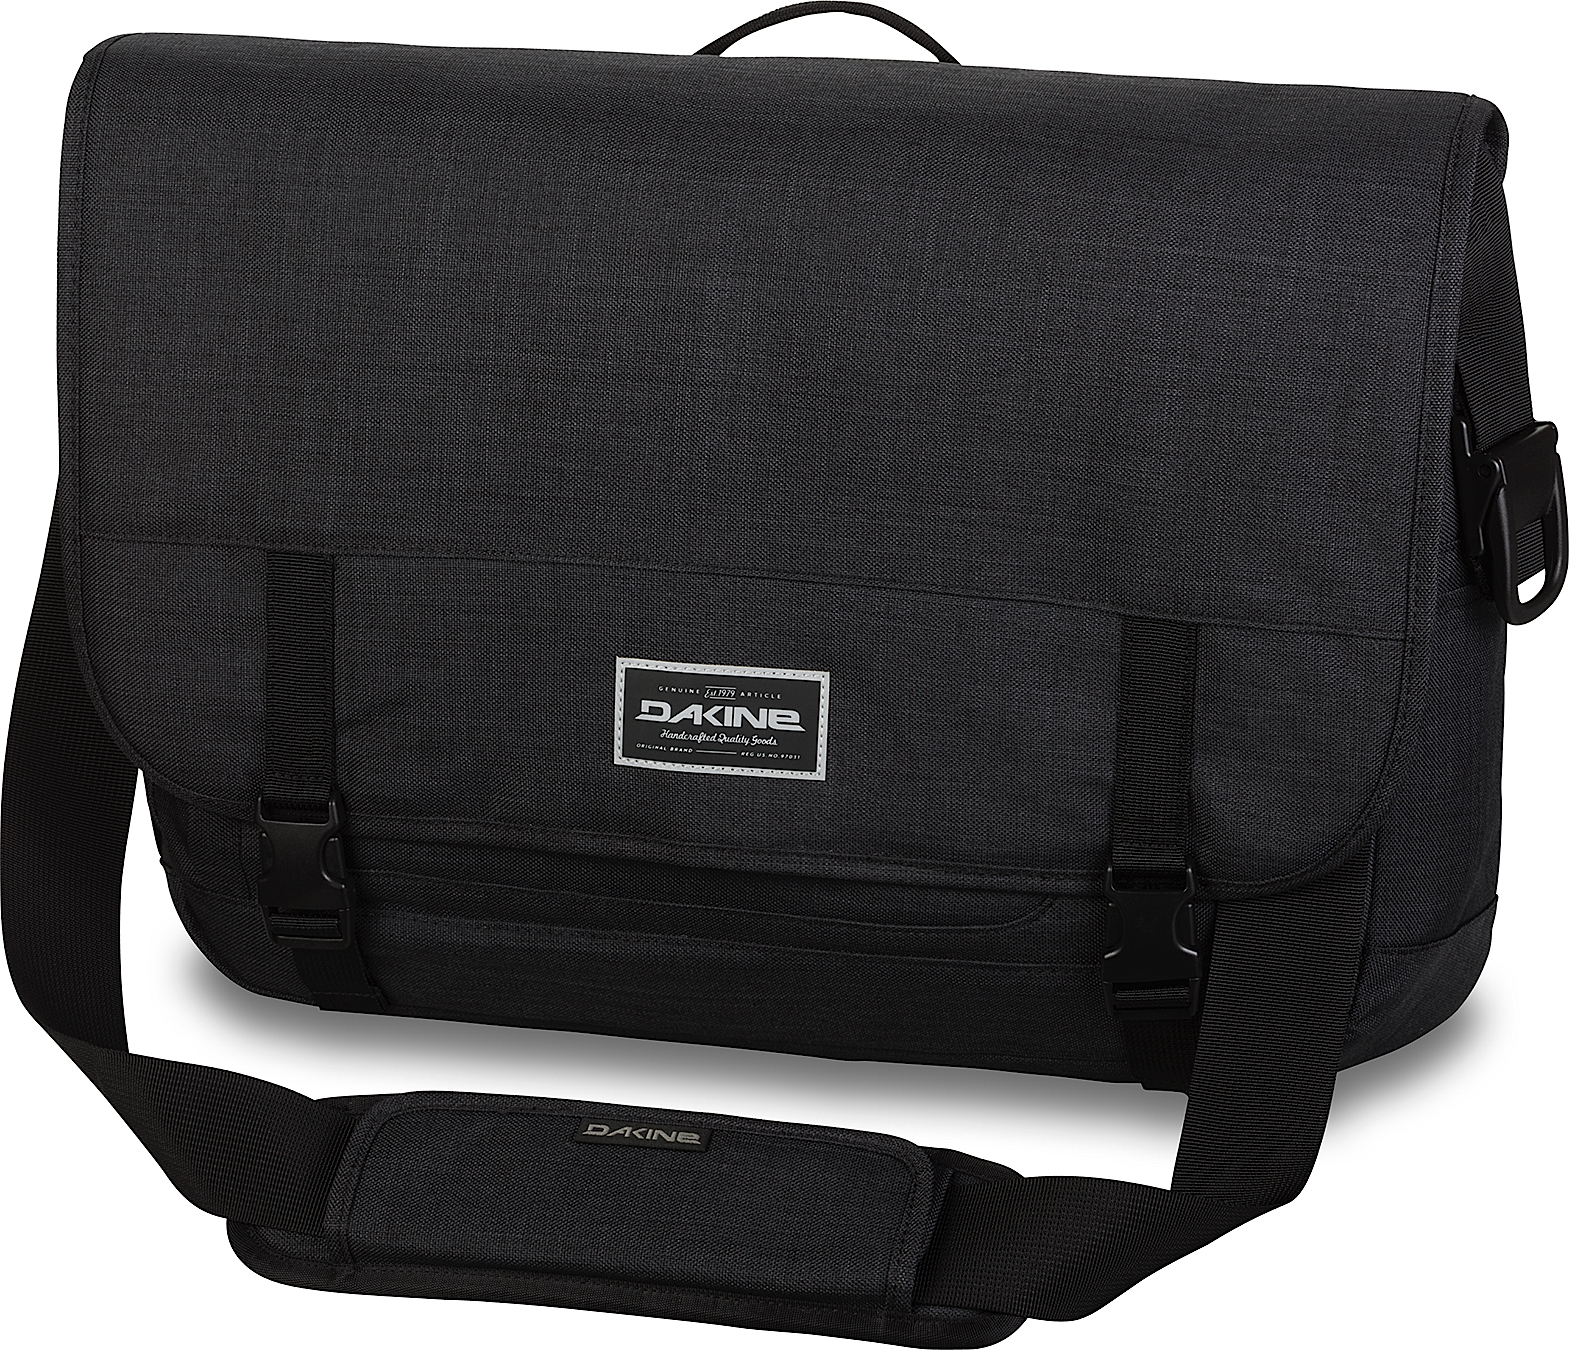 Унисекс Сумка через плечо Dakine MESSENGER 23L BLACK 2015S-08130150-Messenger23L-Black.jpg